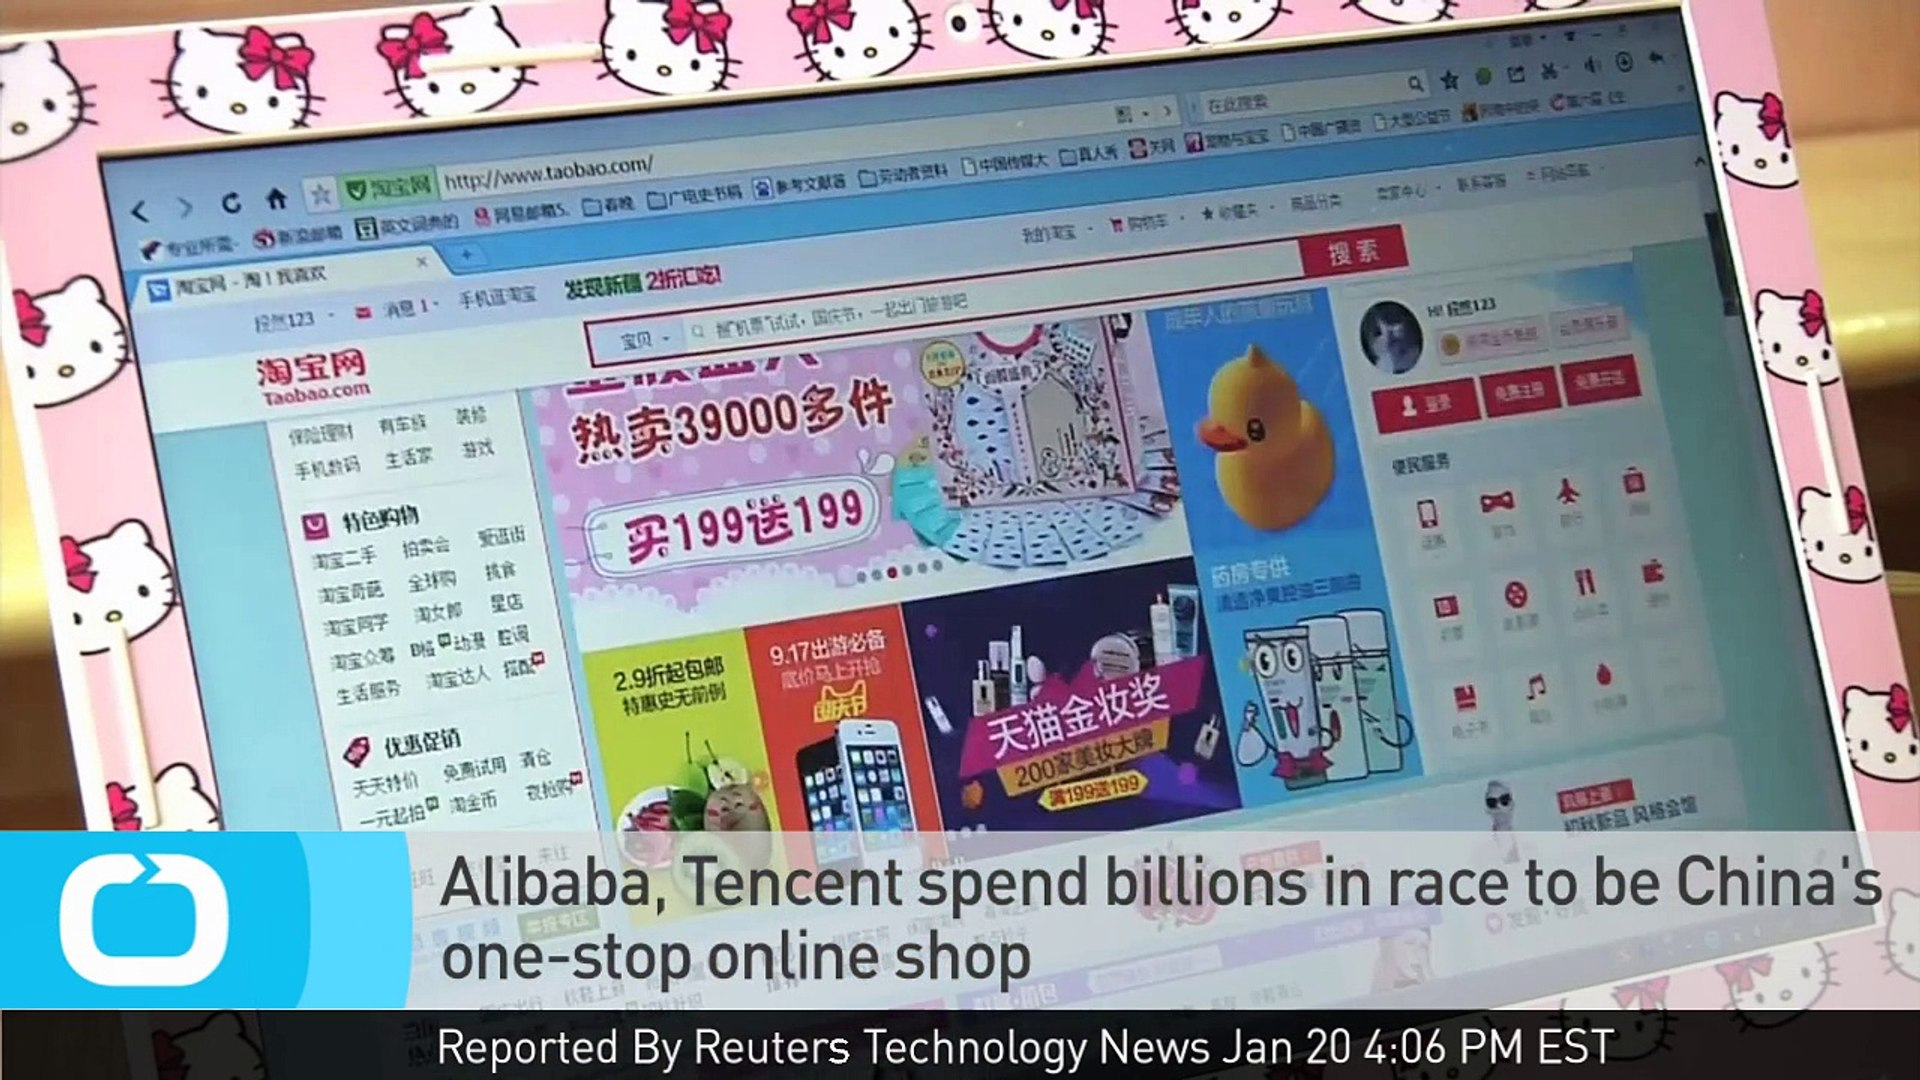 Alibaba, Tencent Spend Billions in Race to Be China's One-stop Online Shop